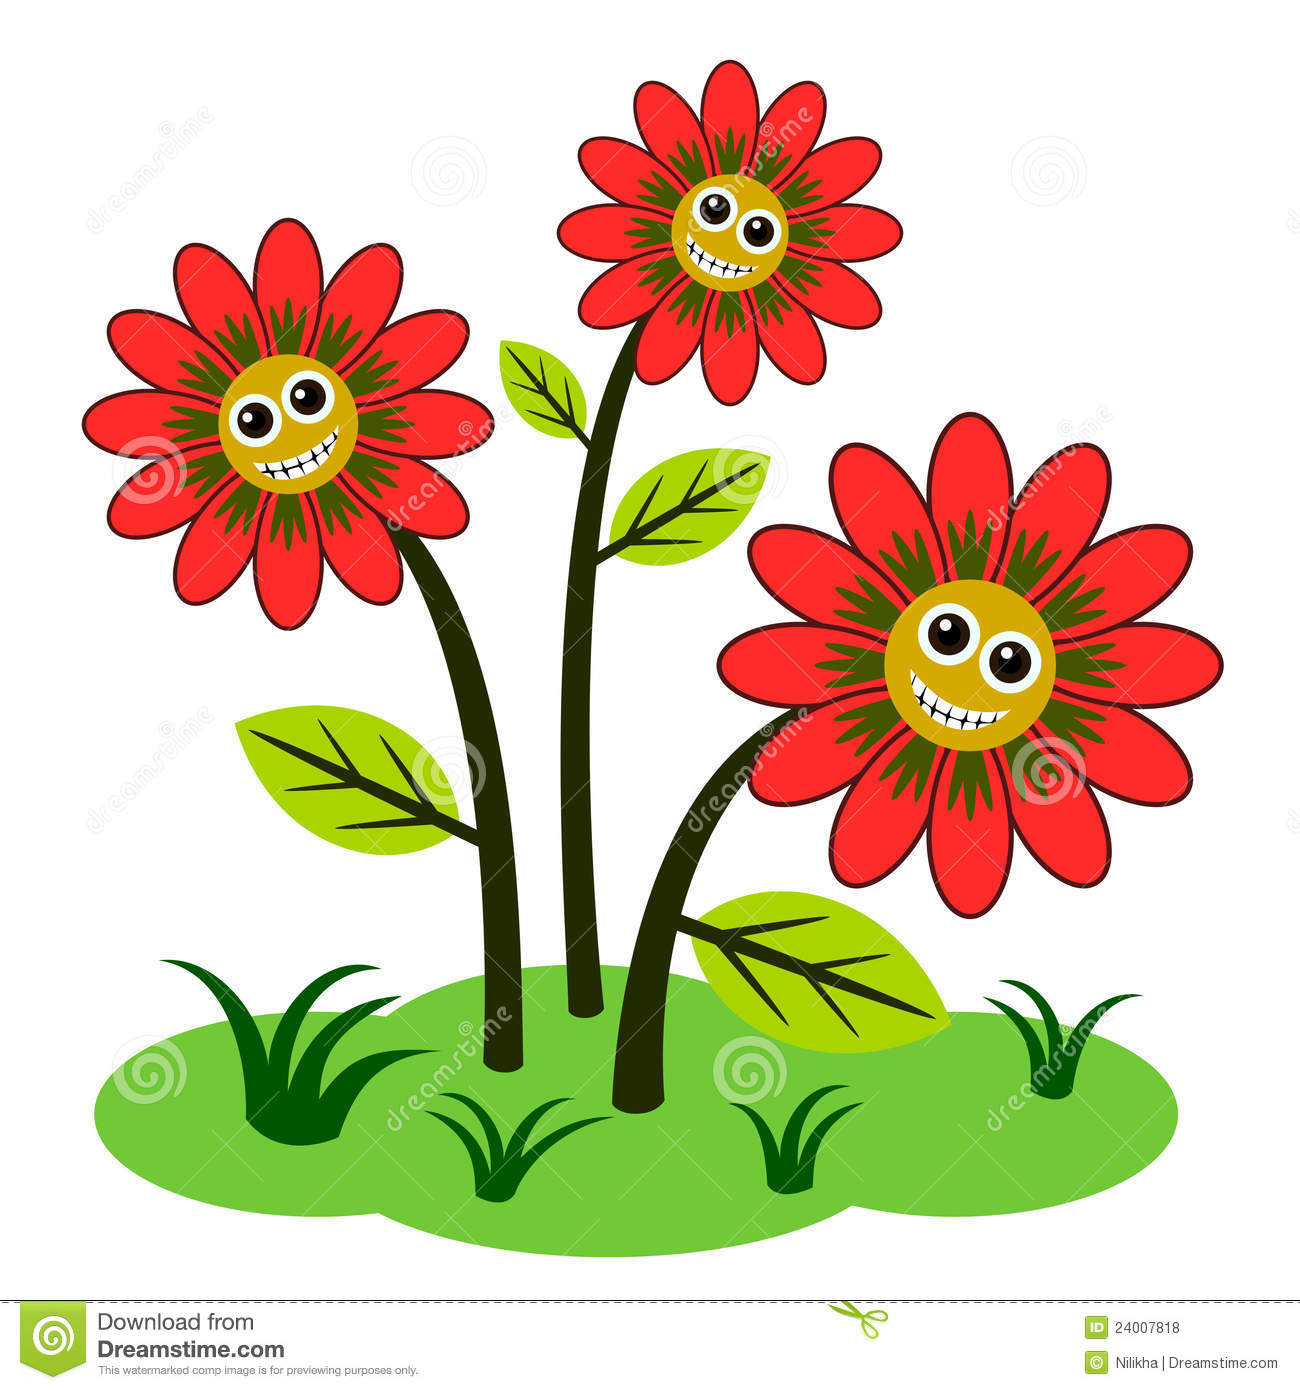 Animated Happy Flower Clipart - Clipart Kid